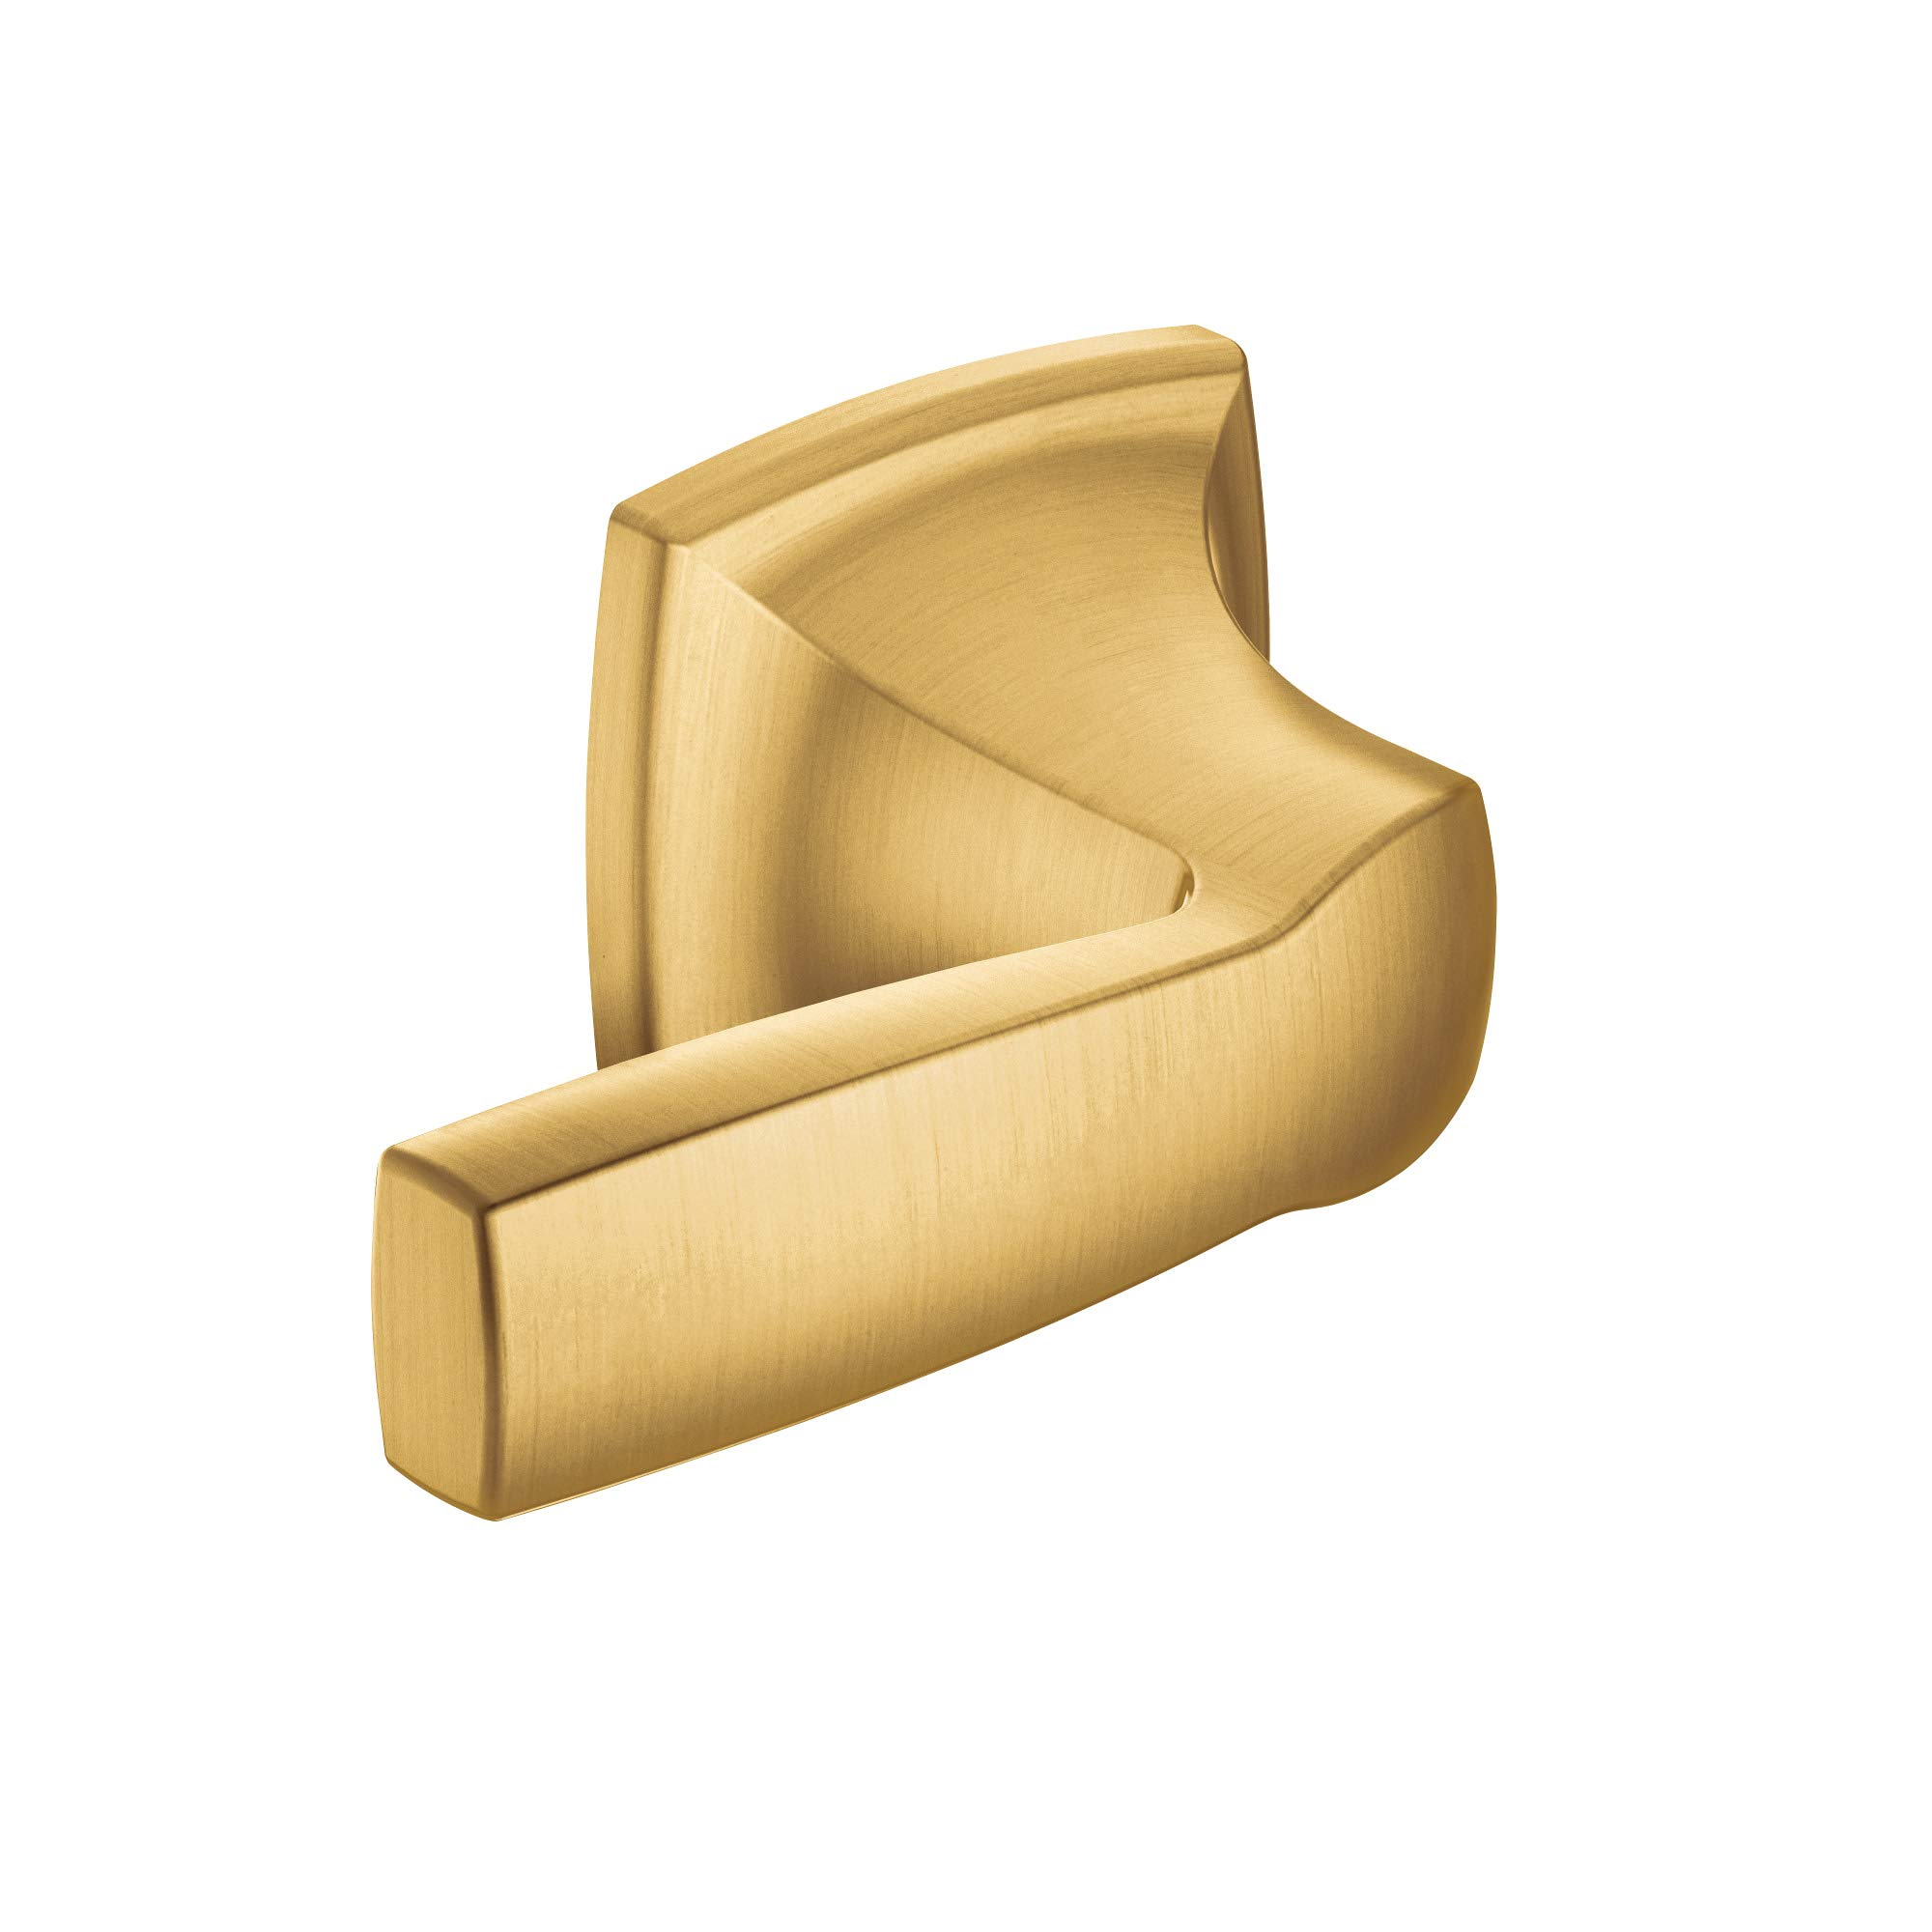 Moen YB5101BG Voss Collection Bath Accessory, Brushed Gold